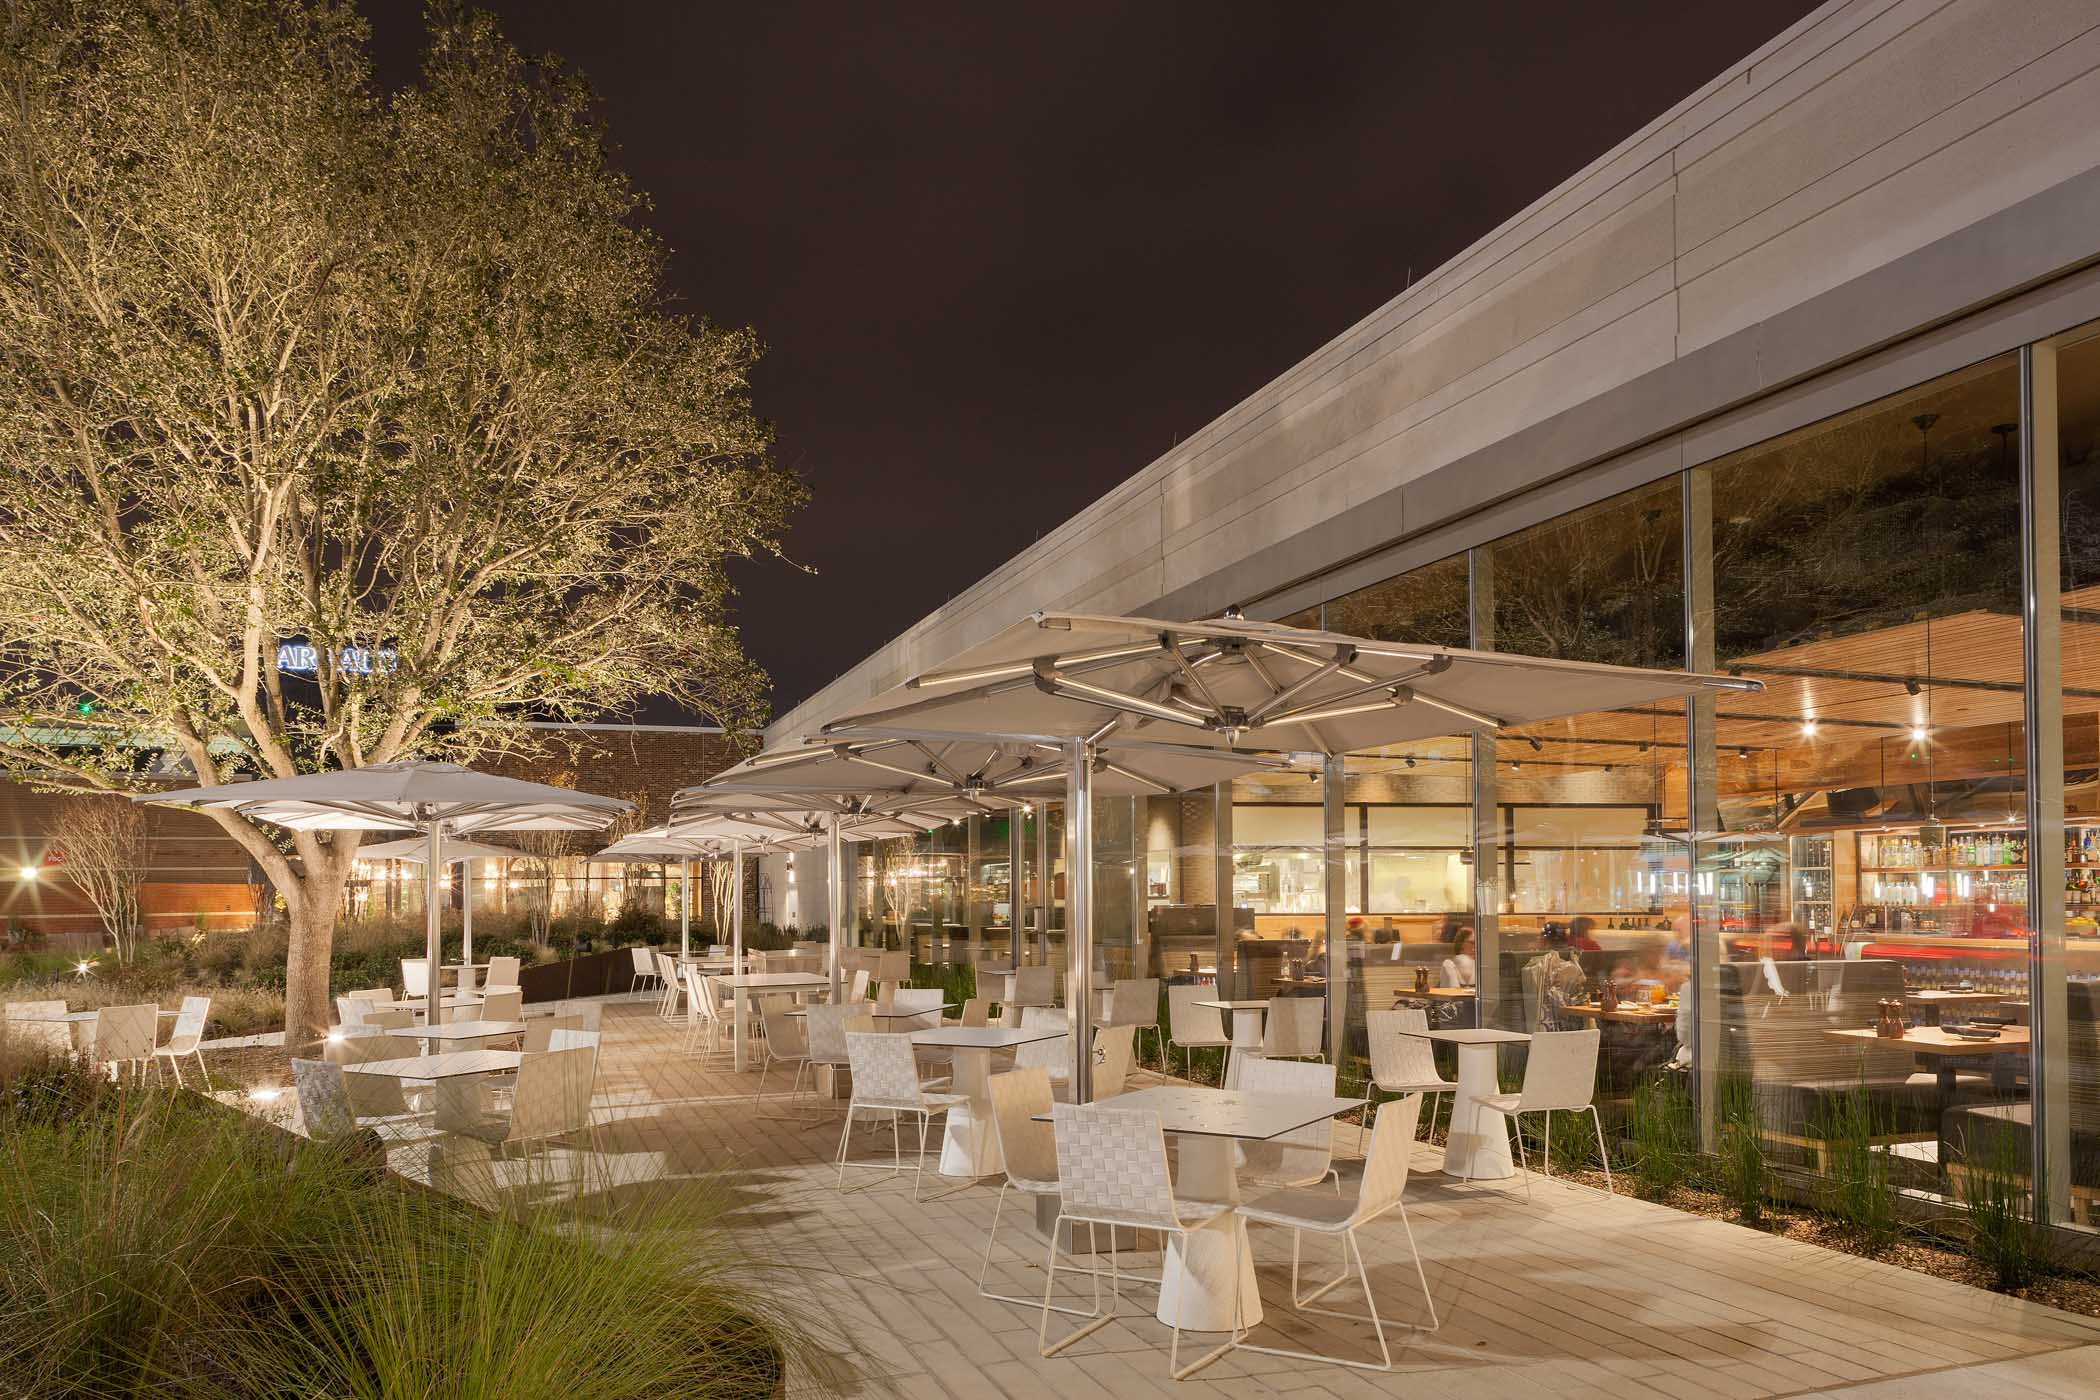 Bazille at Nordstrom Restaurant architect